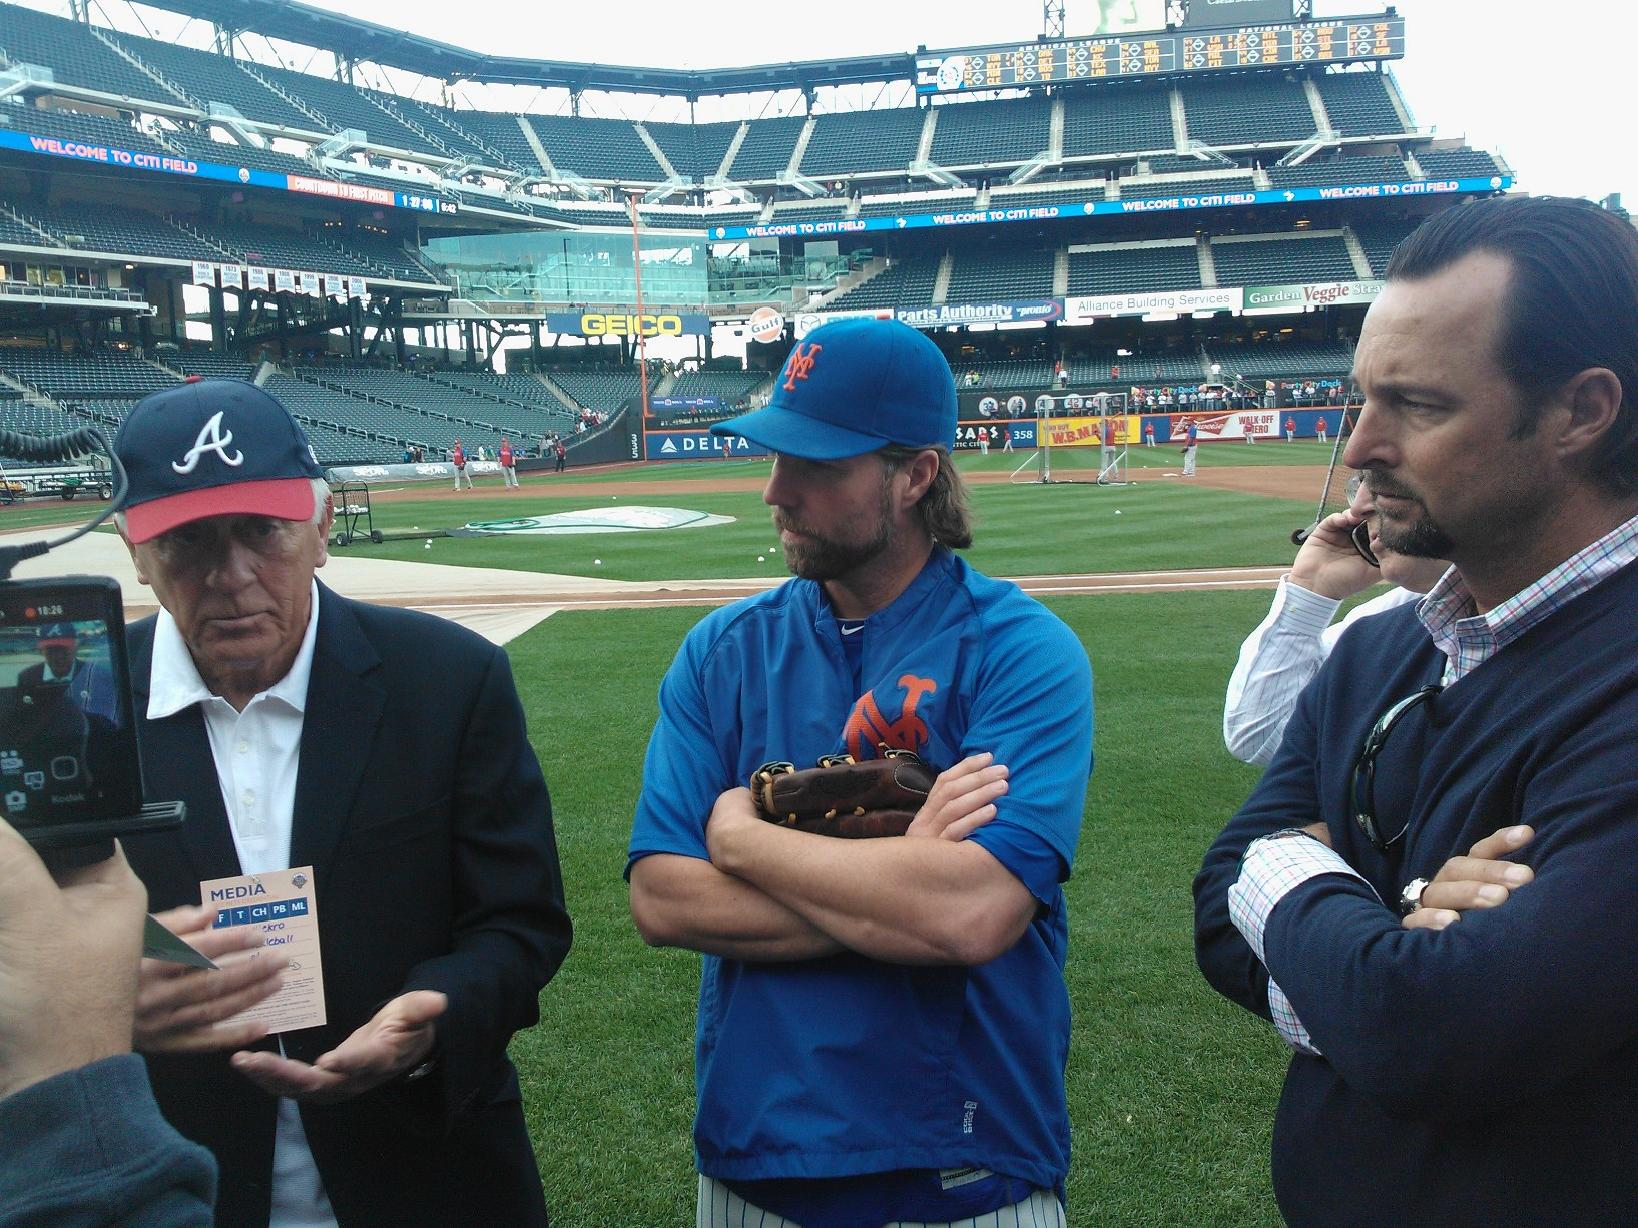 MMO Interview: Phil Niekro, Tim Wakefield Visit R.A. Dickey At Citi Field Last Night